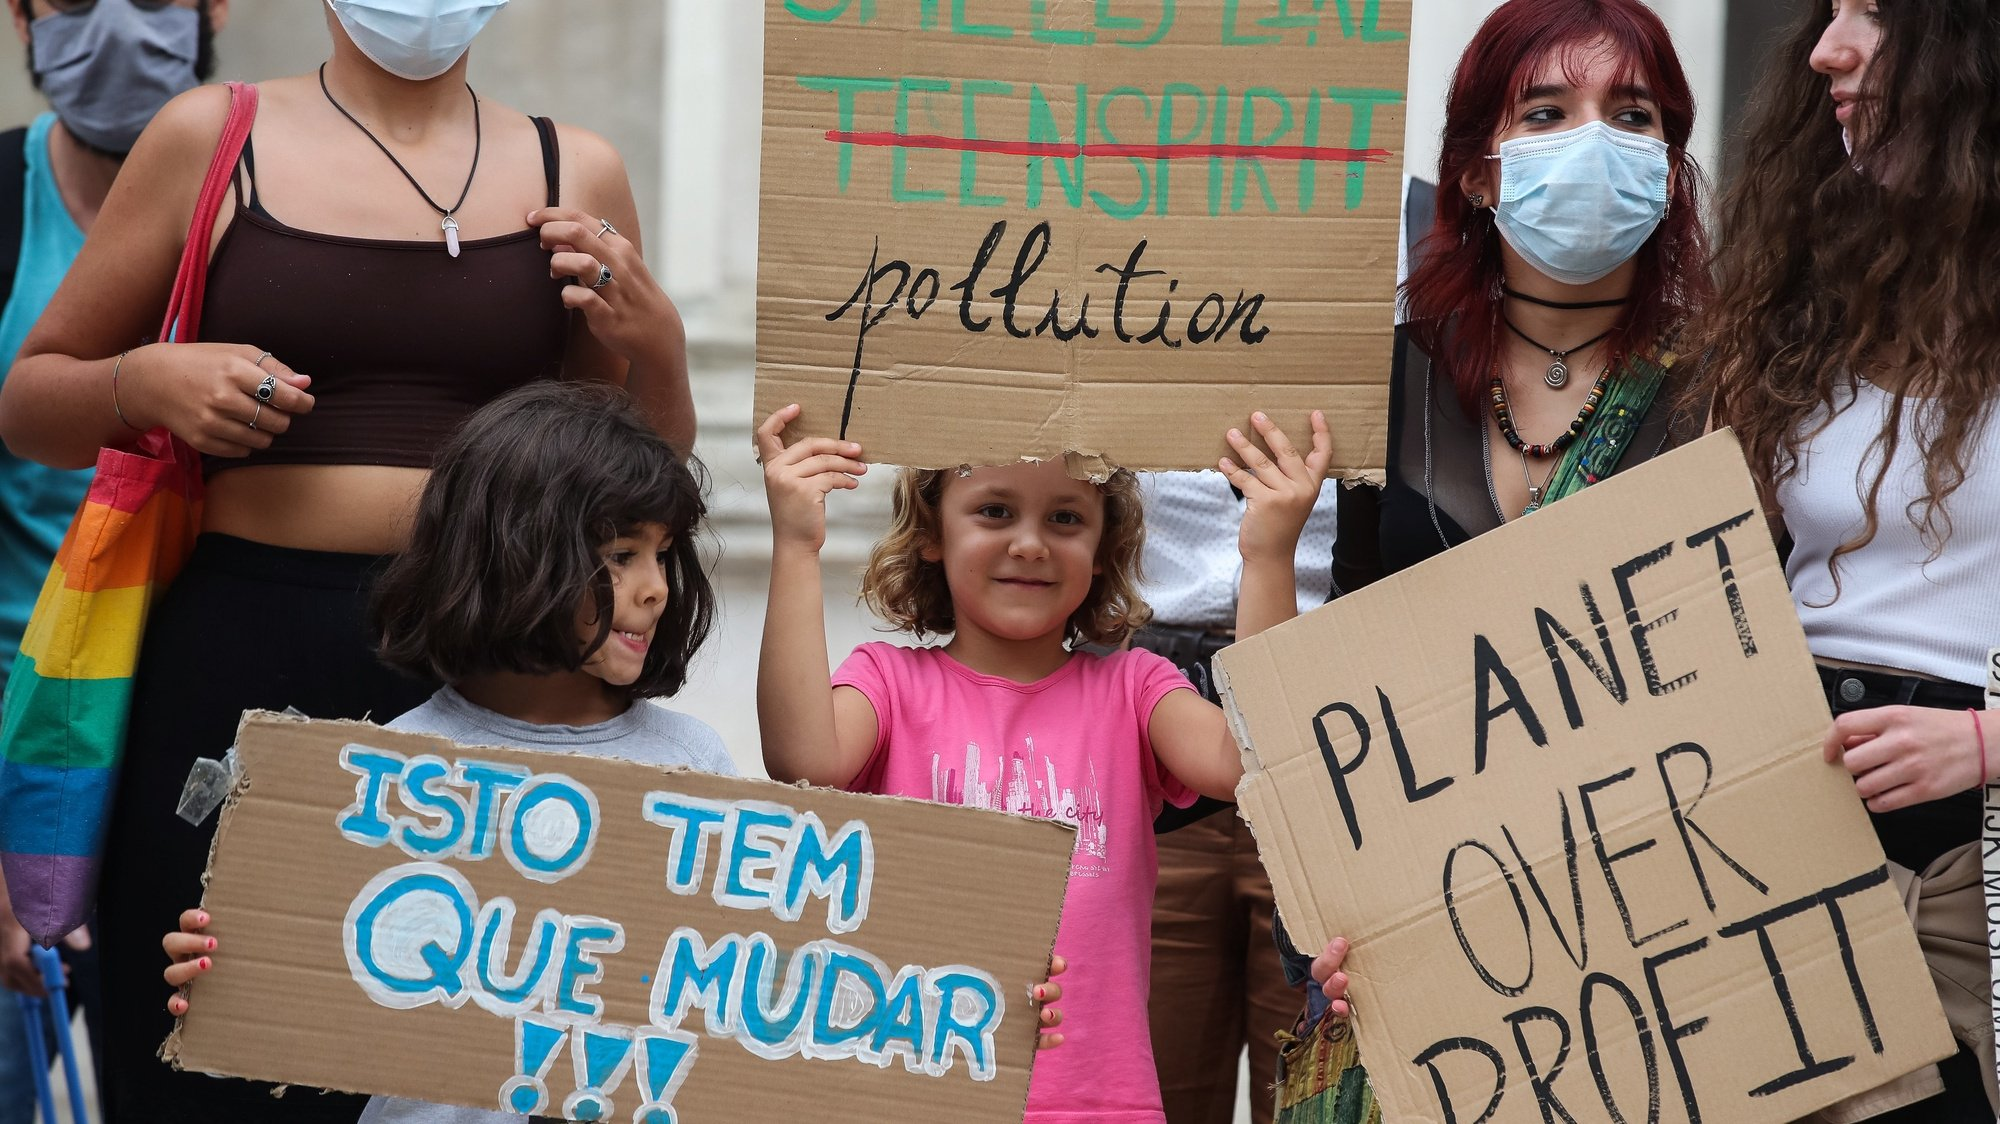 epa09486139 Participants carry placards during a Youth Climate Strike in Coimbra, Portugal, 24 September 2021. The student organisation that emerged in 2019 with Swedish activist Greta Thunberg is back on the streets demanding a just transition under the slogan 'Our house is on fire. Society must act'. This is the 8th demonstration called by Portuguese students in the name of climate justice.  EPA/PAULO NOVAIS